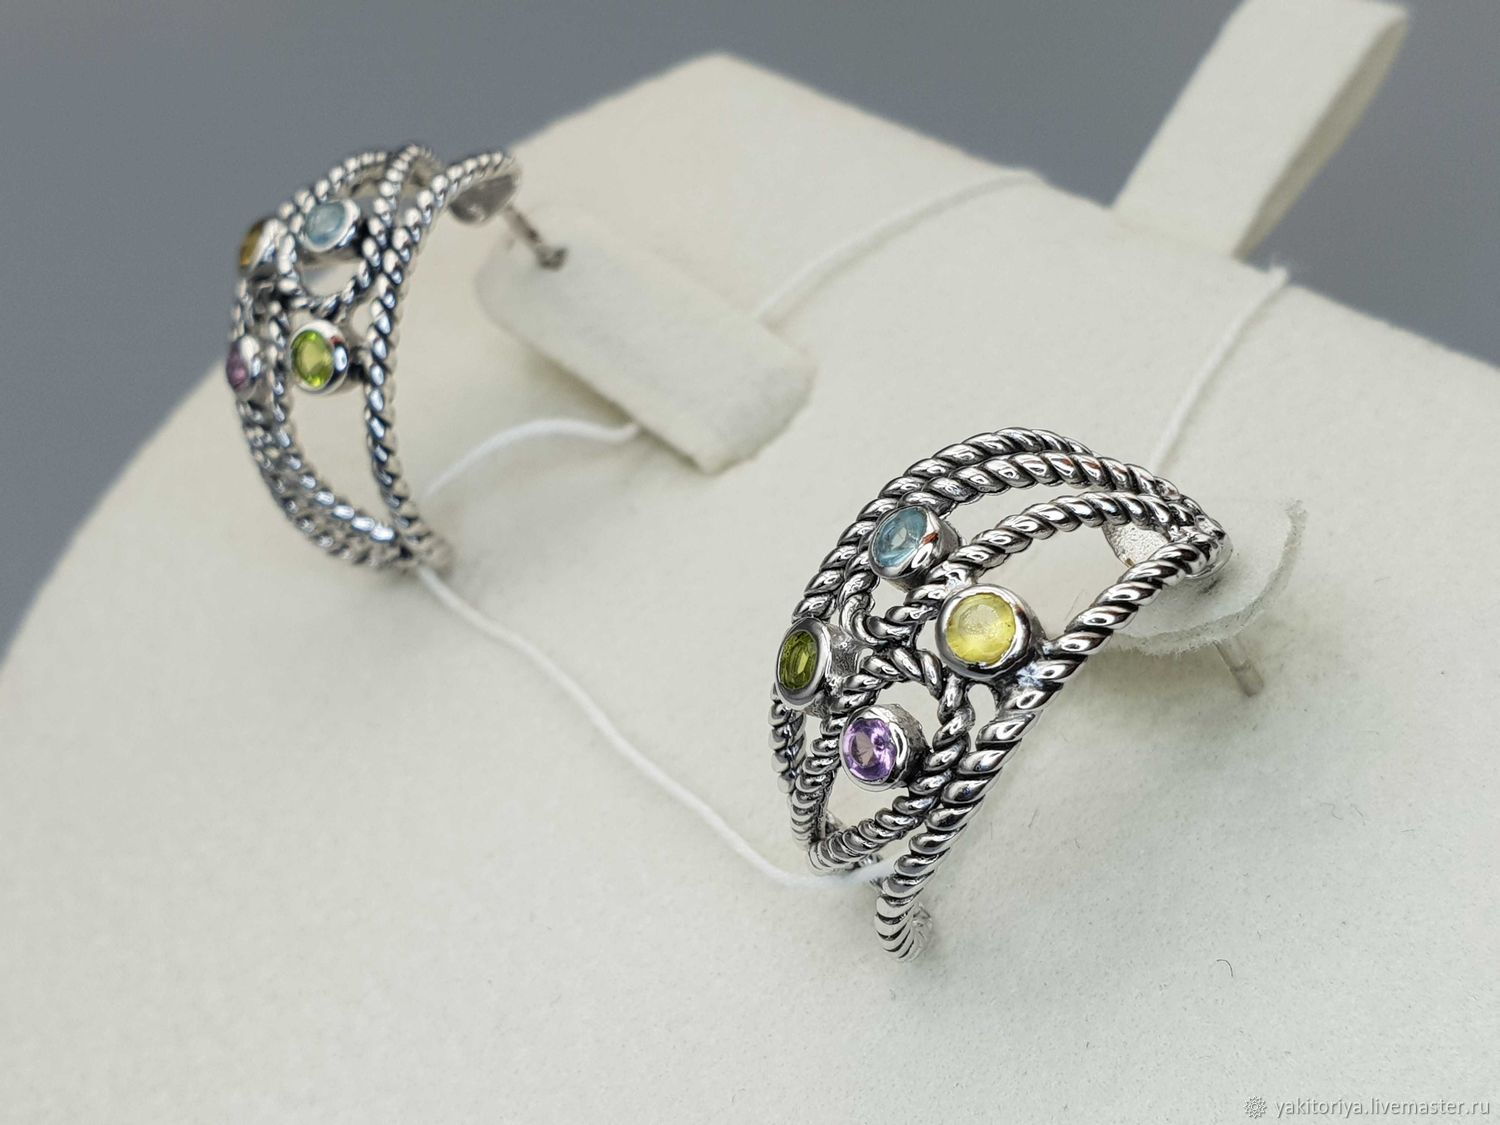 Silver earrings with topaz, amethyst, citrine and chrysolite, Earrings, Moscow,  Фото №1